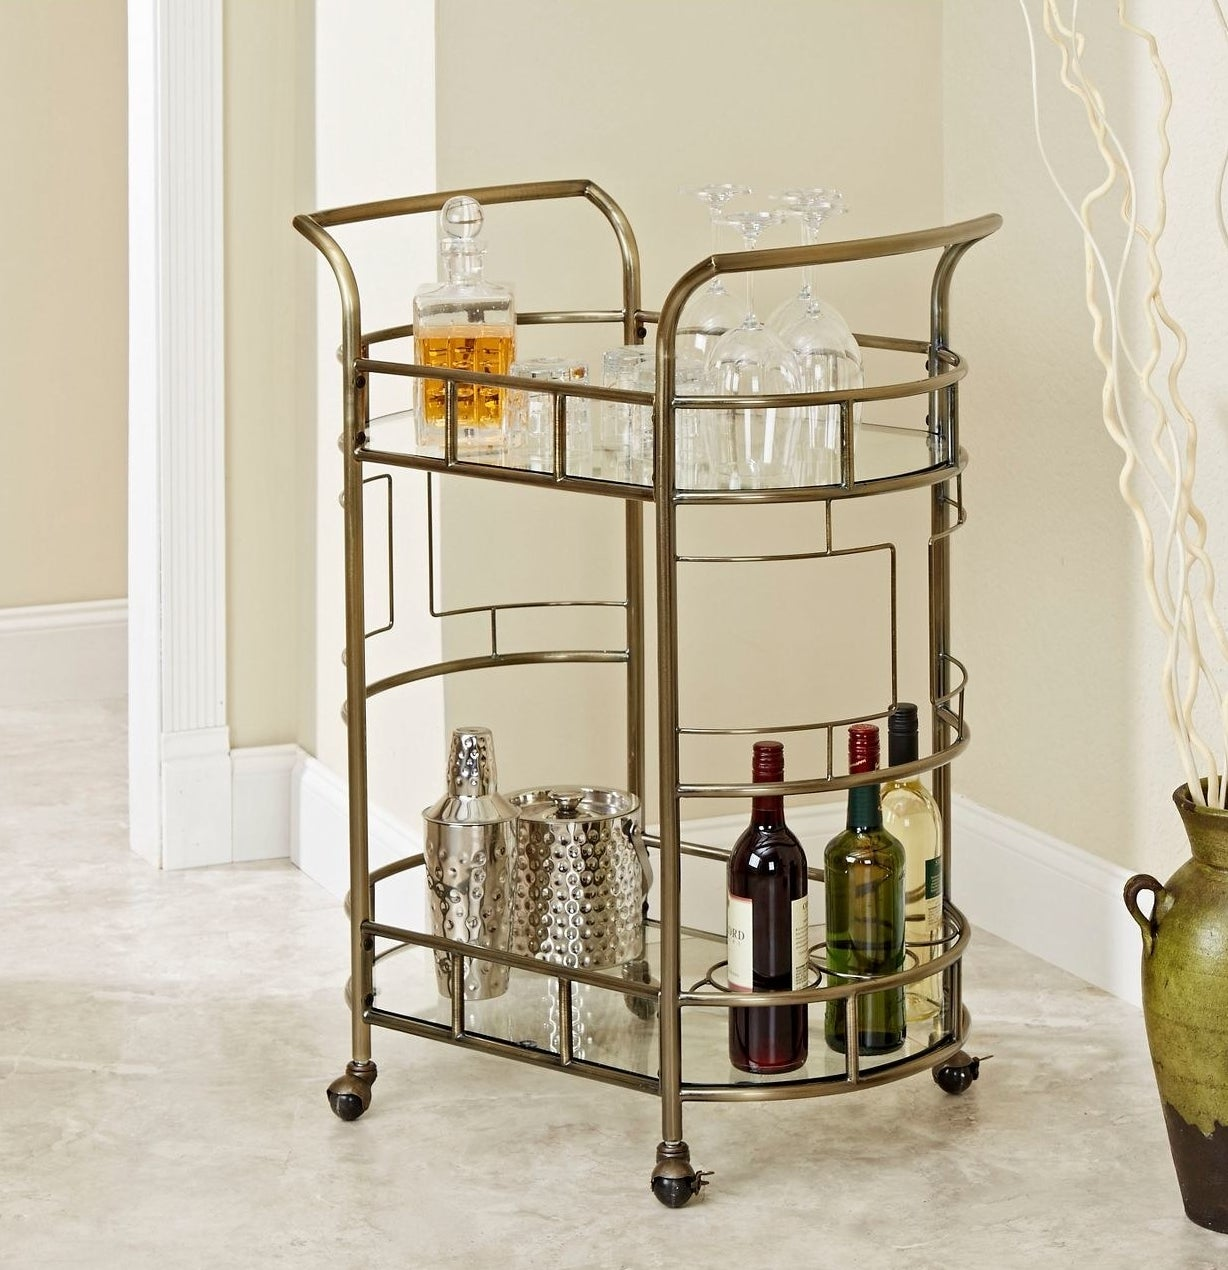 The 2 tiered bar cart with glasses on the first tier and wine in the 3 wine holders on the second tier